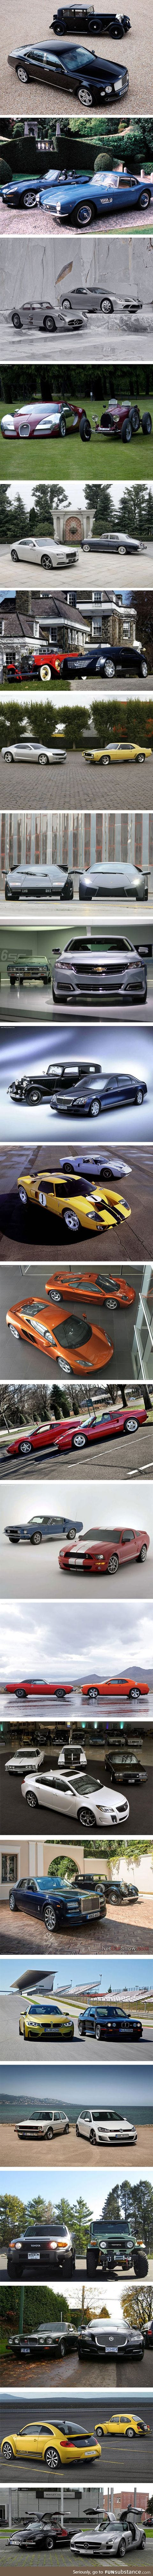 The same brand of car: Then and now